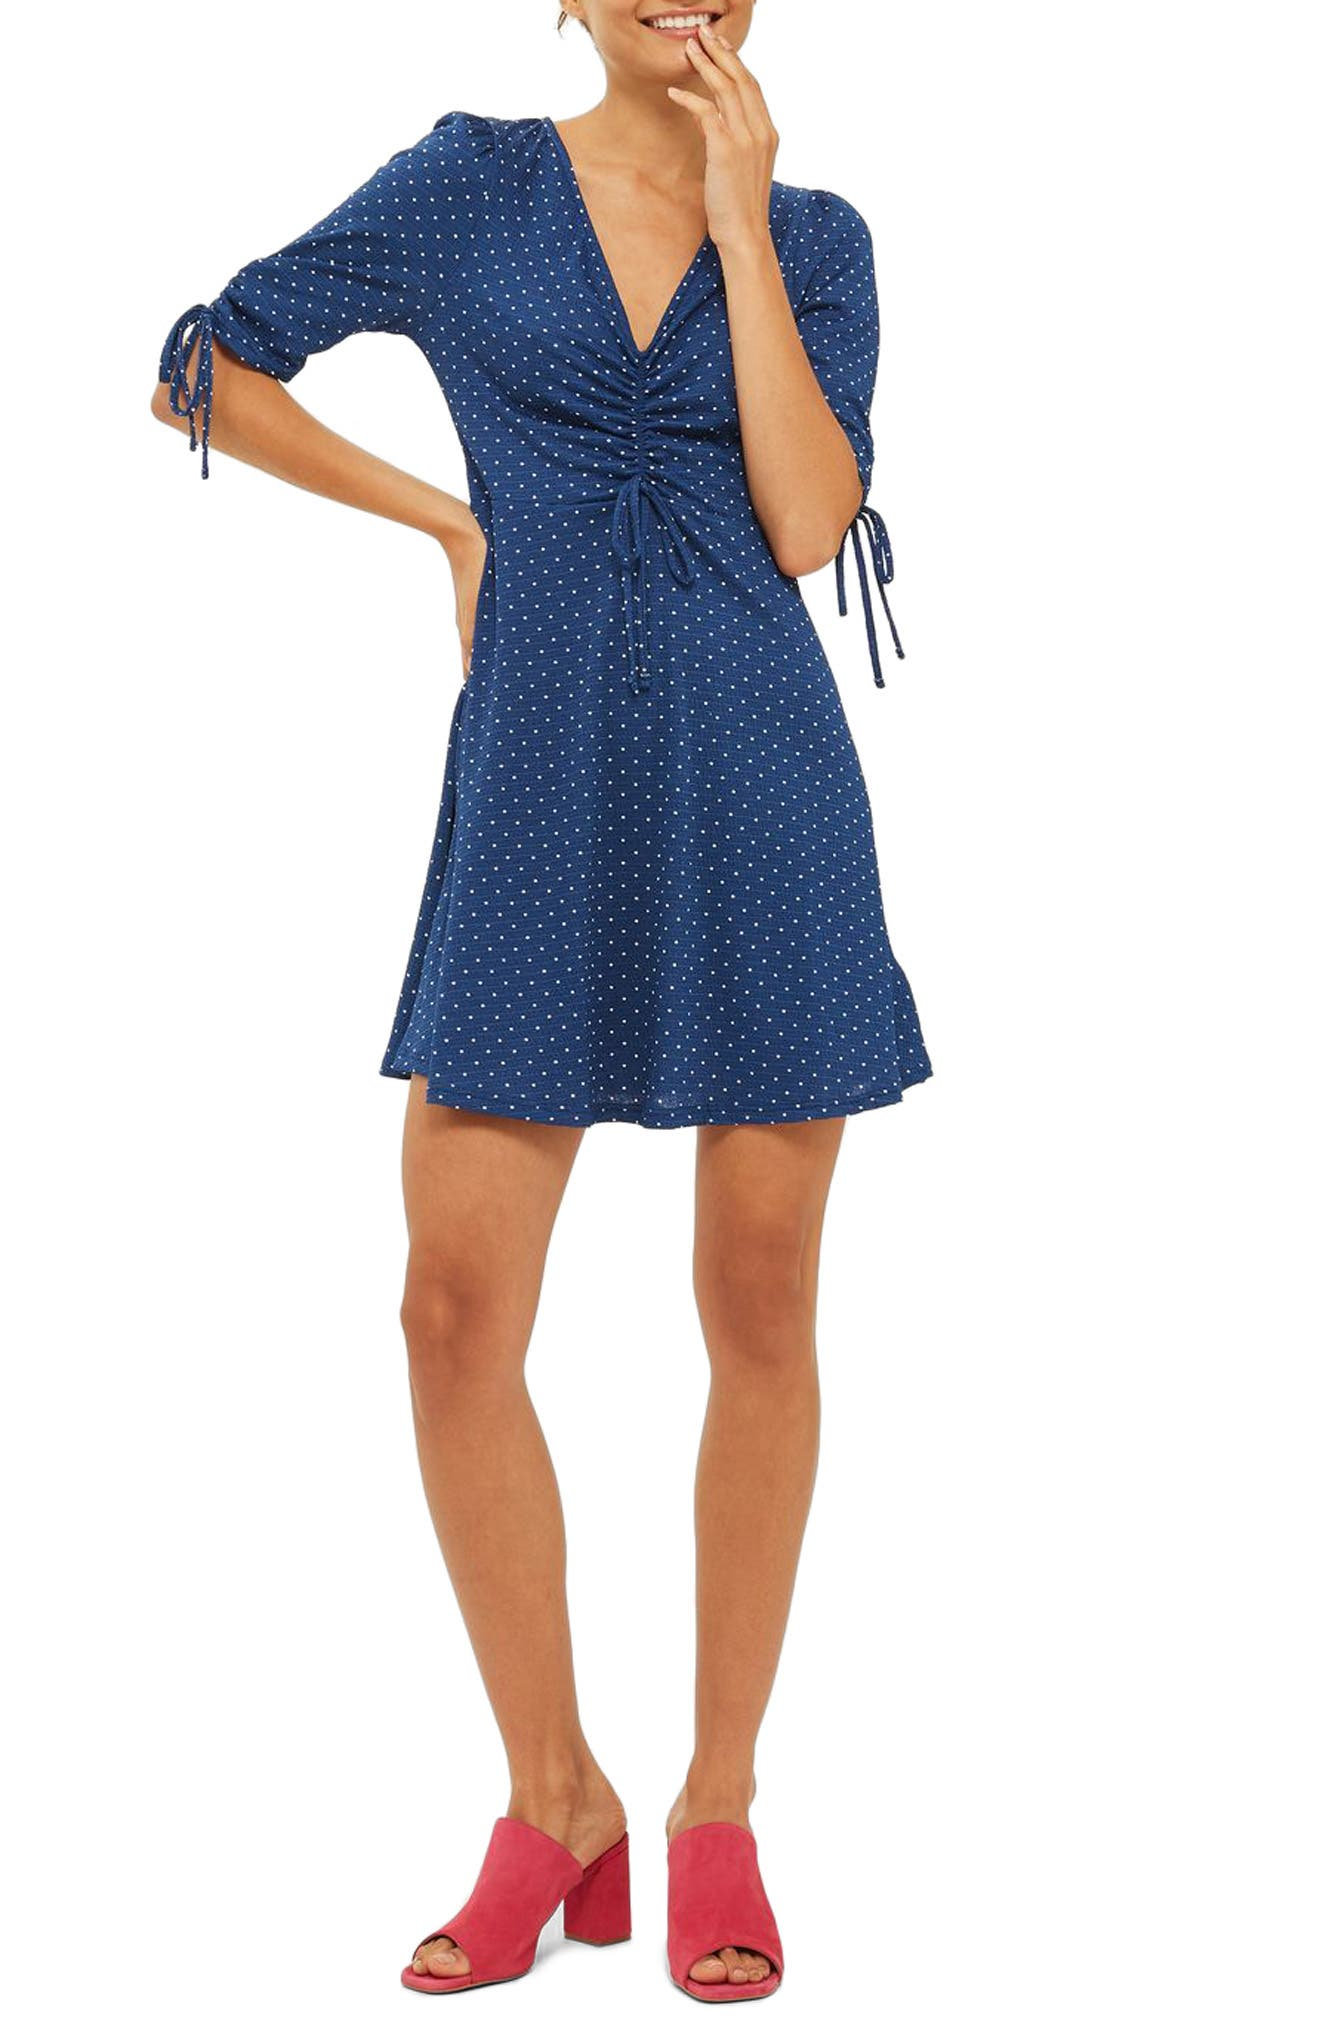 Polka Dot Tea Dress,                             Main thumbnail 1, color,                             Navy Blue Multi